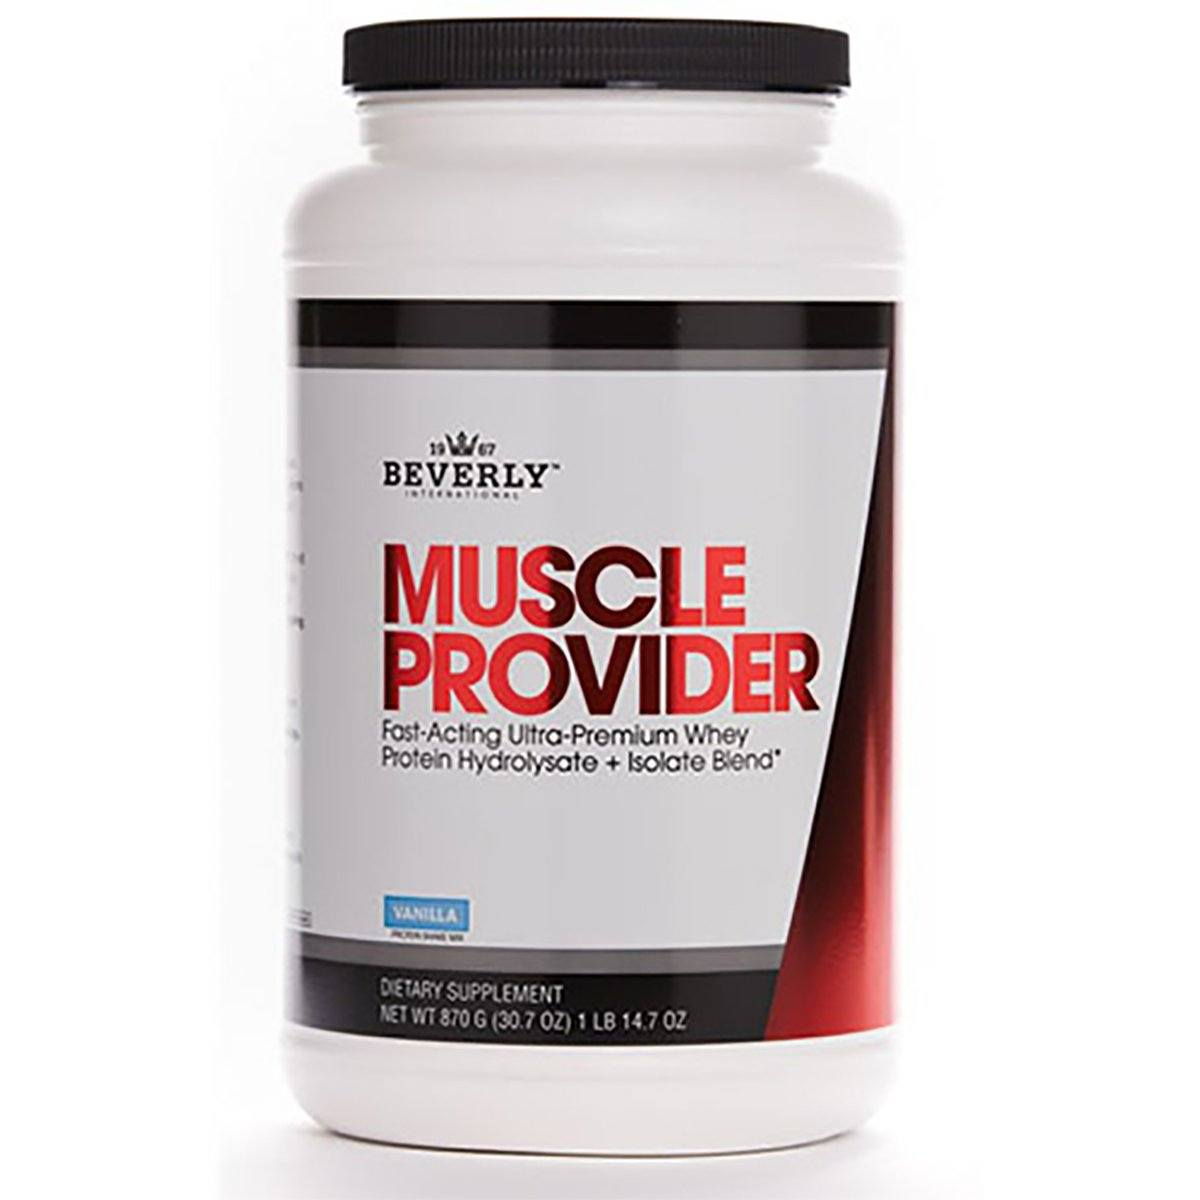 Beverly International Muscle Provider 1lb Protein Beverly International  (1057944731691)